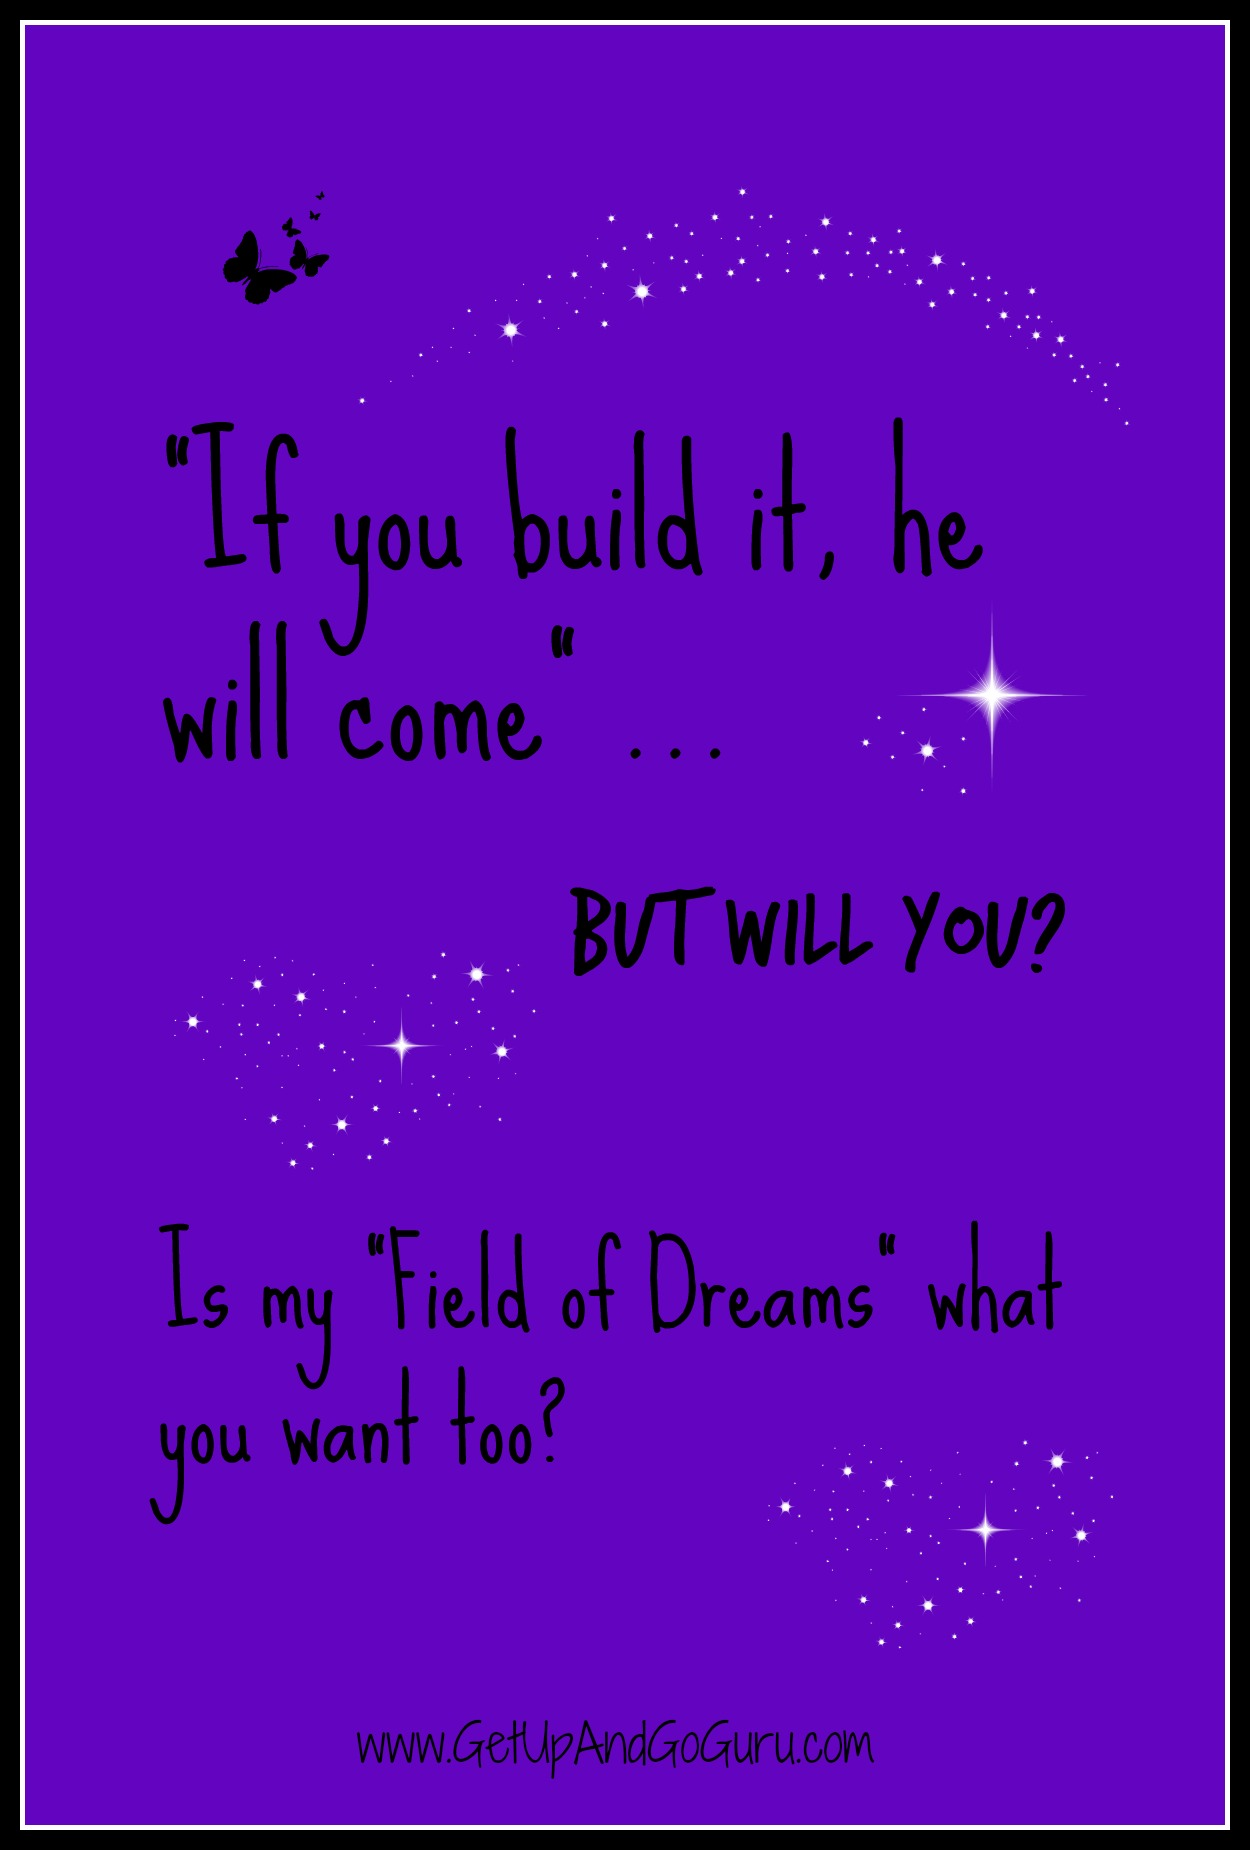 If I Build It, Will You Come? Spoonie Warriors Self Help Membership Site ~  Your Feedback Please?